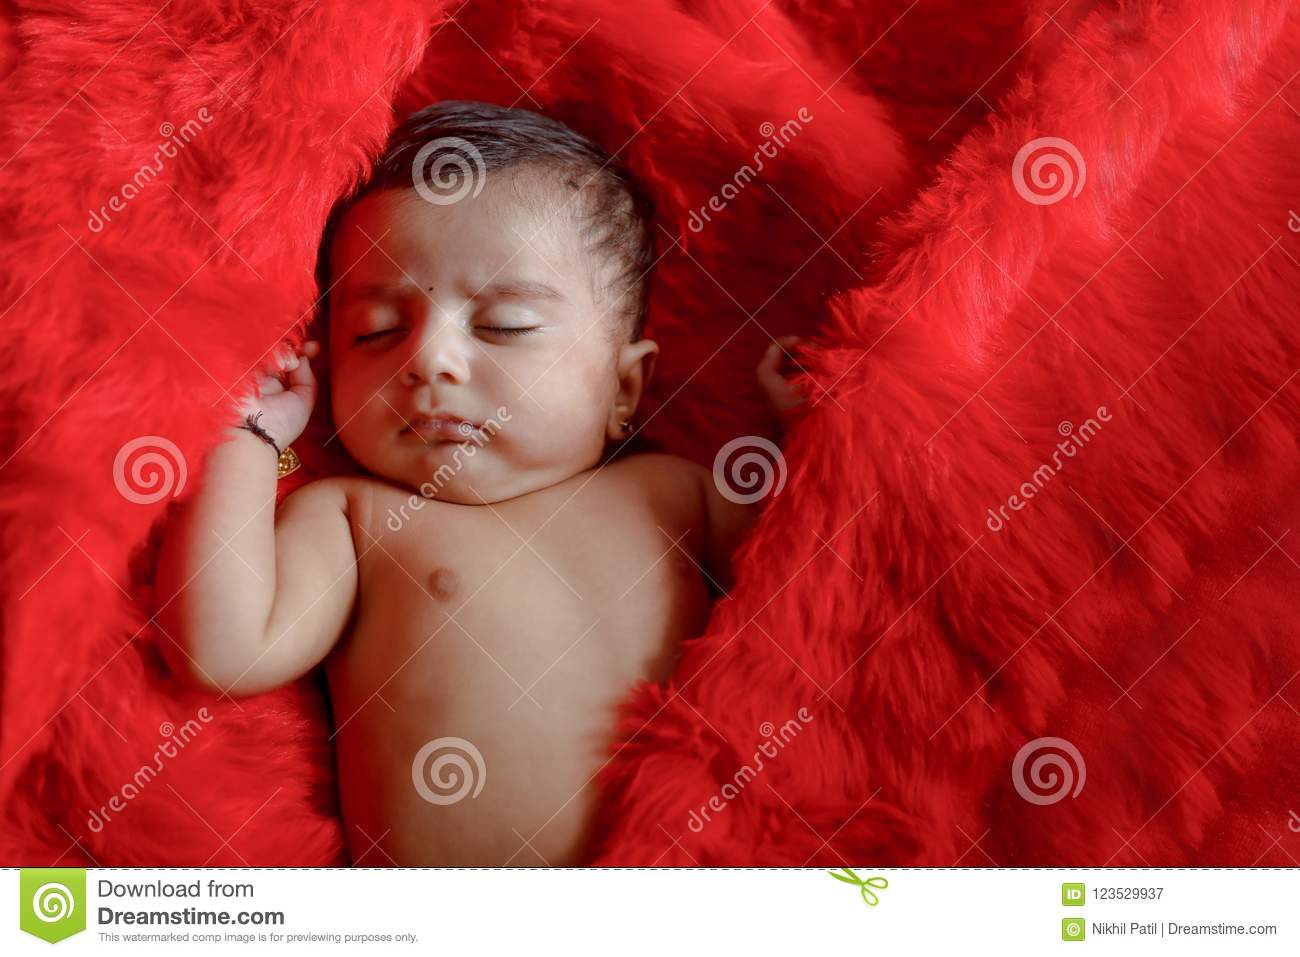 cute indian baby girl sleeping on bed stock image - image of face